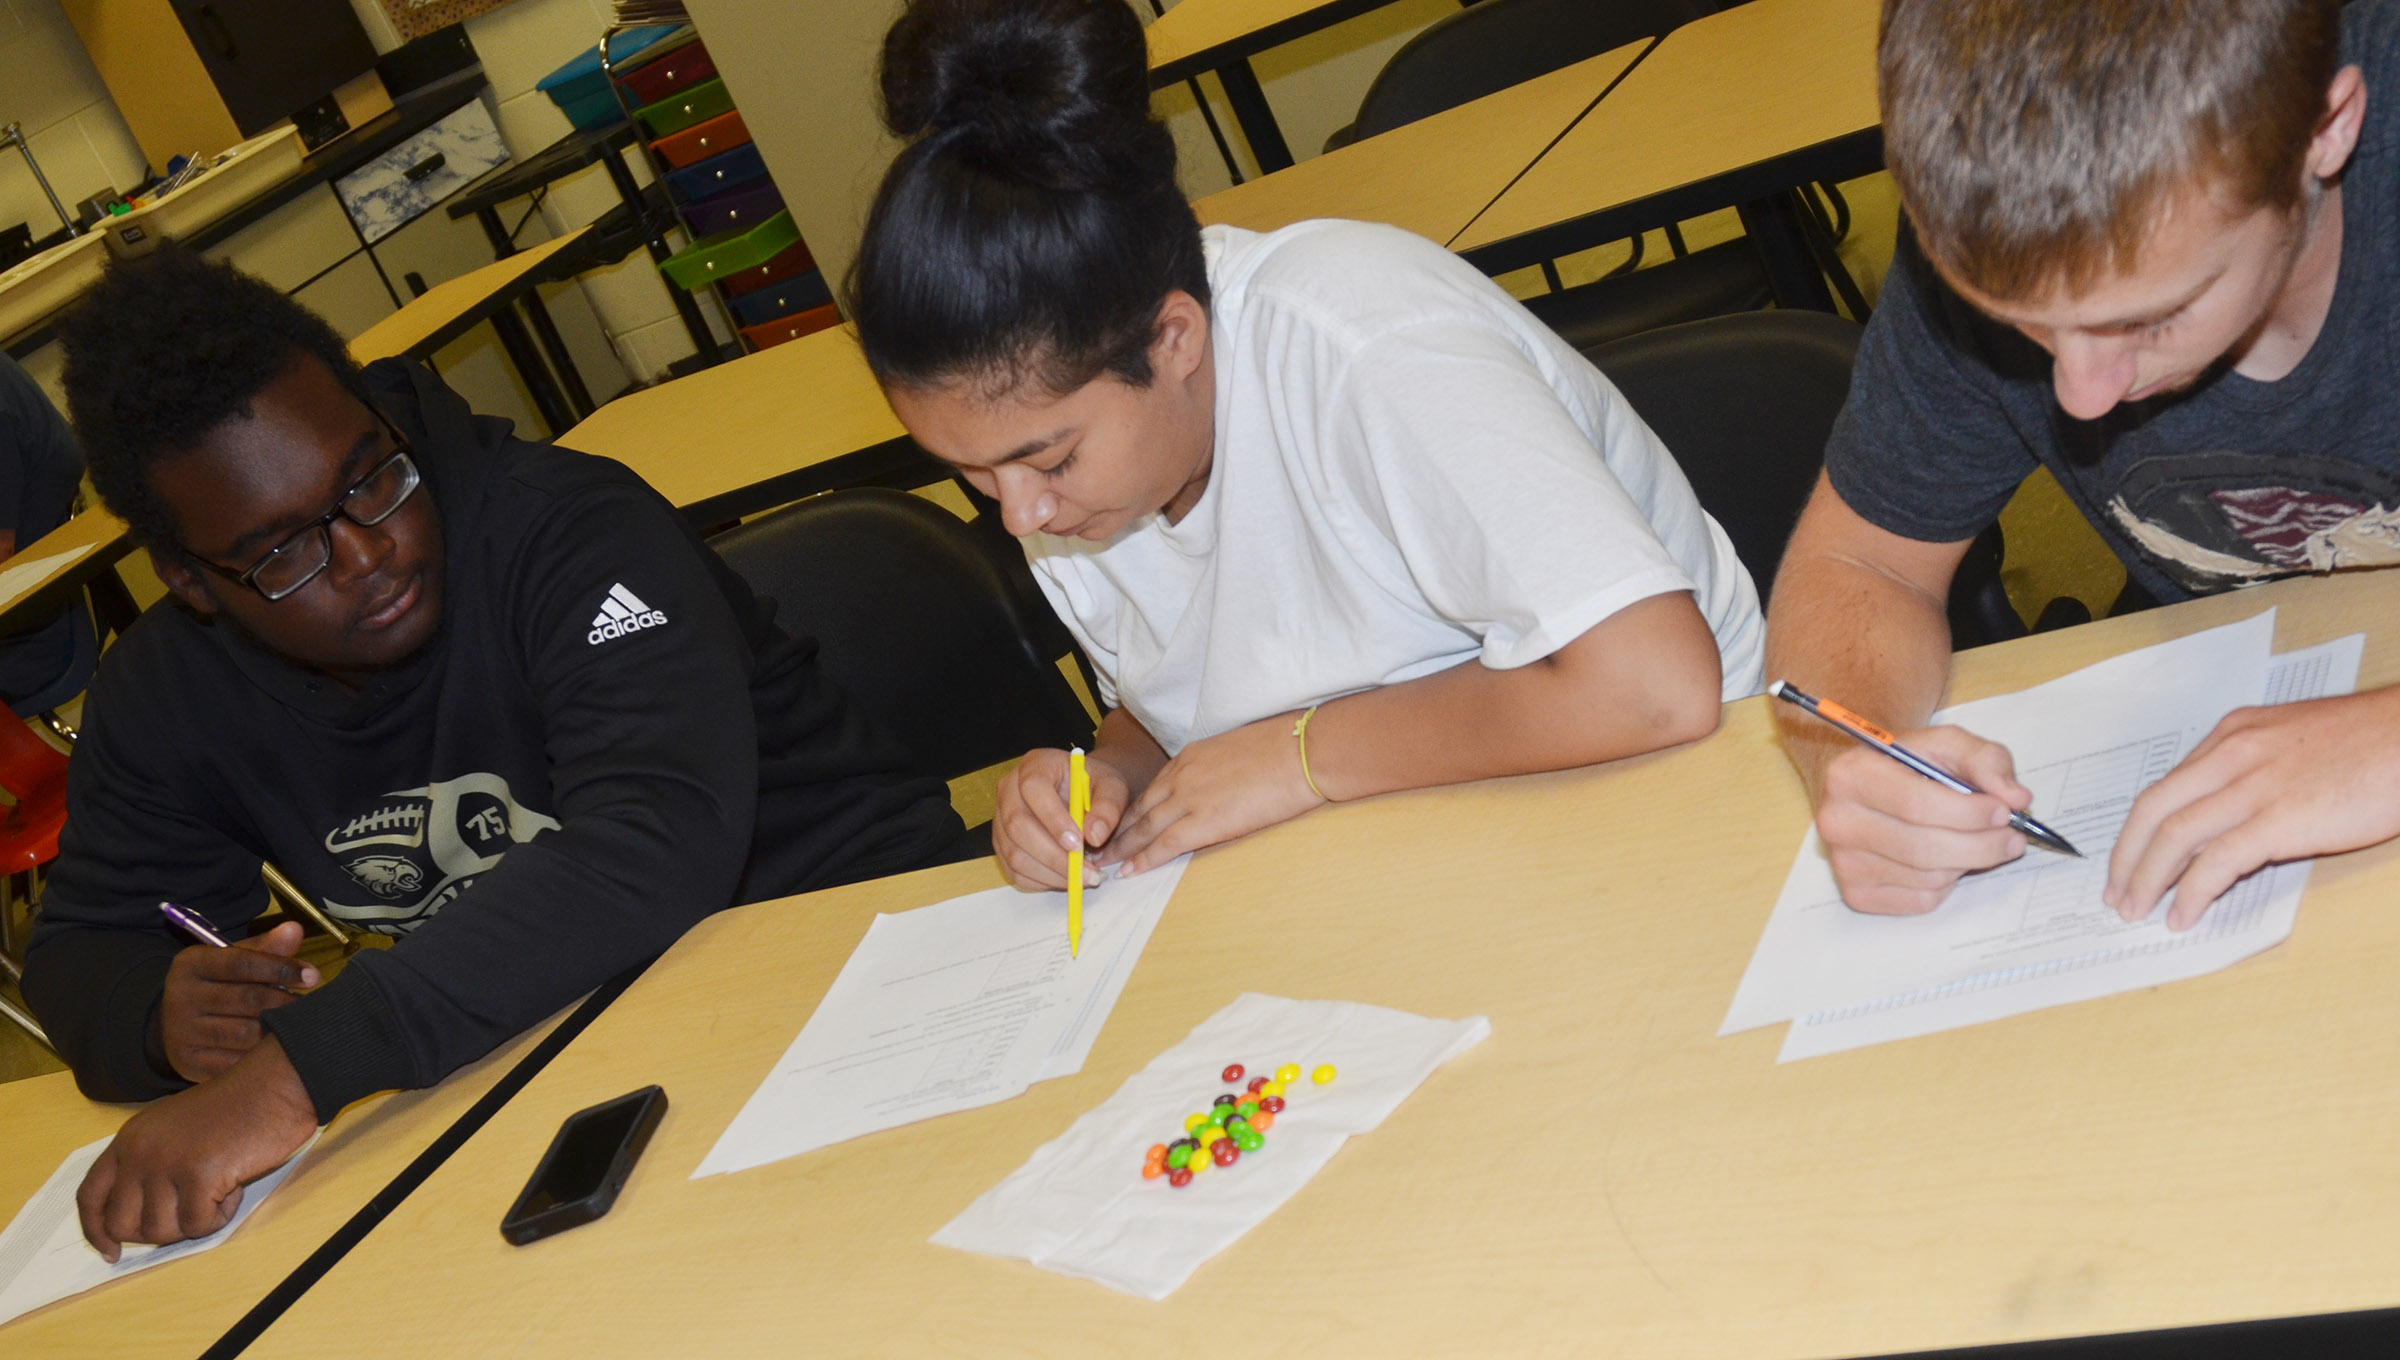 From left, CHS sophomores Taekwon McCoy, Cristina Barrera and Michael Griffiths sort their Skittles candies and create their graph to represent how many they have of each color.